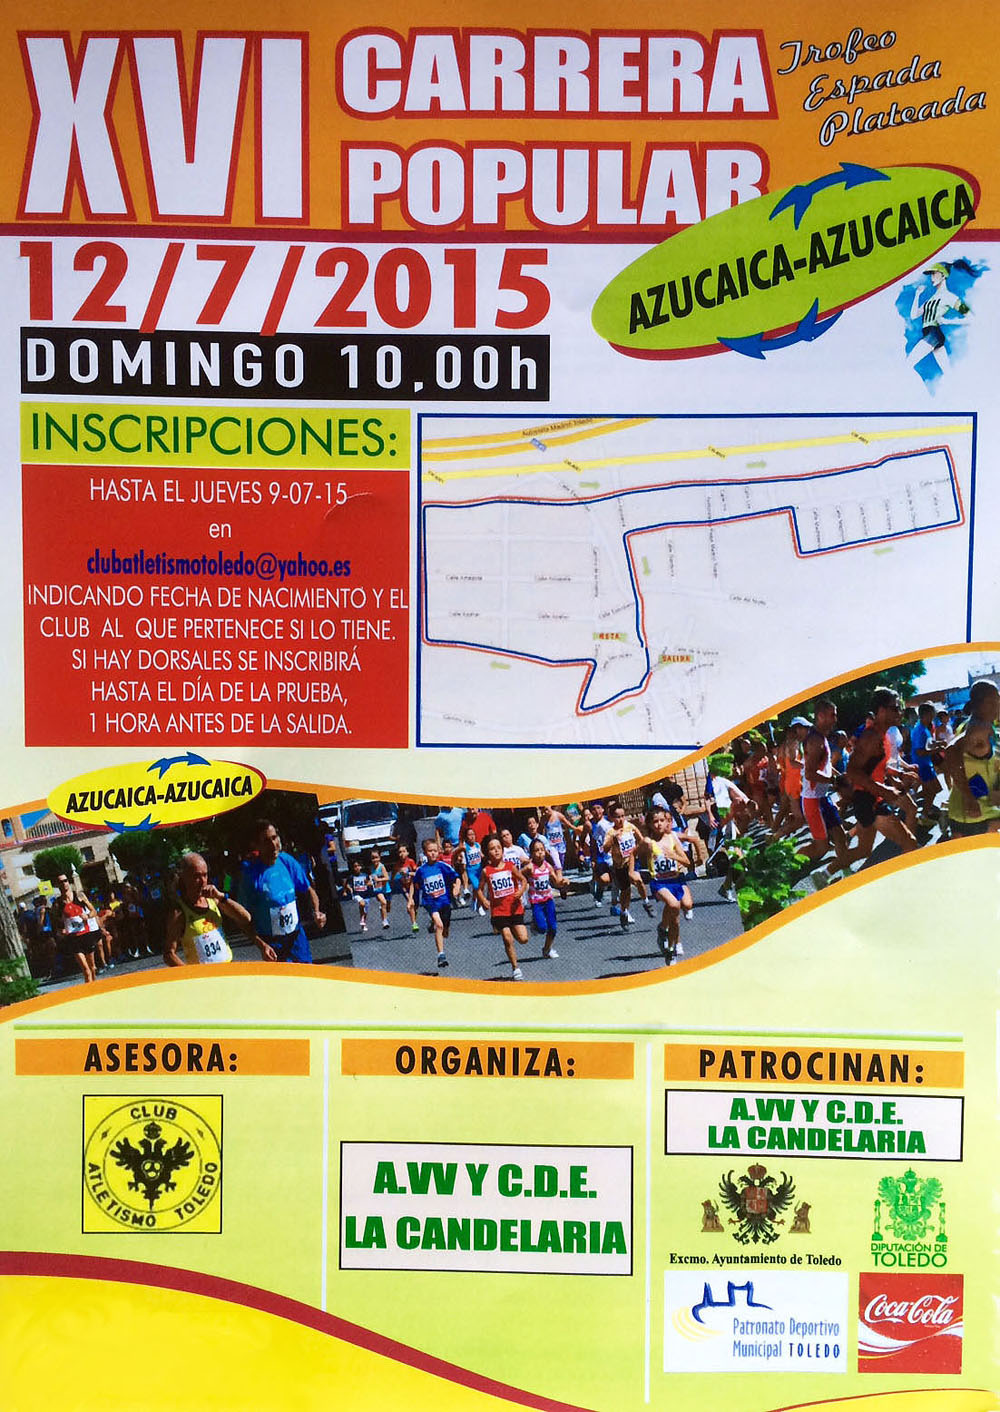 XVI Carrera Popular de Azucaica